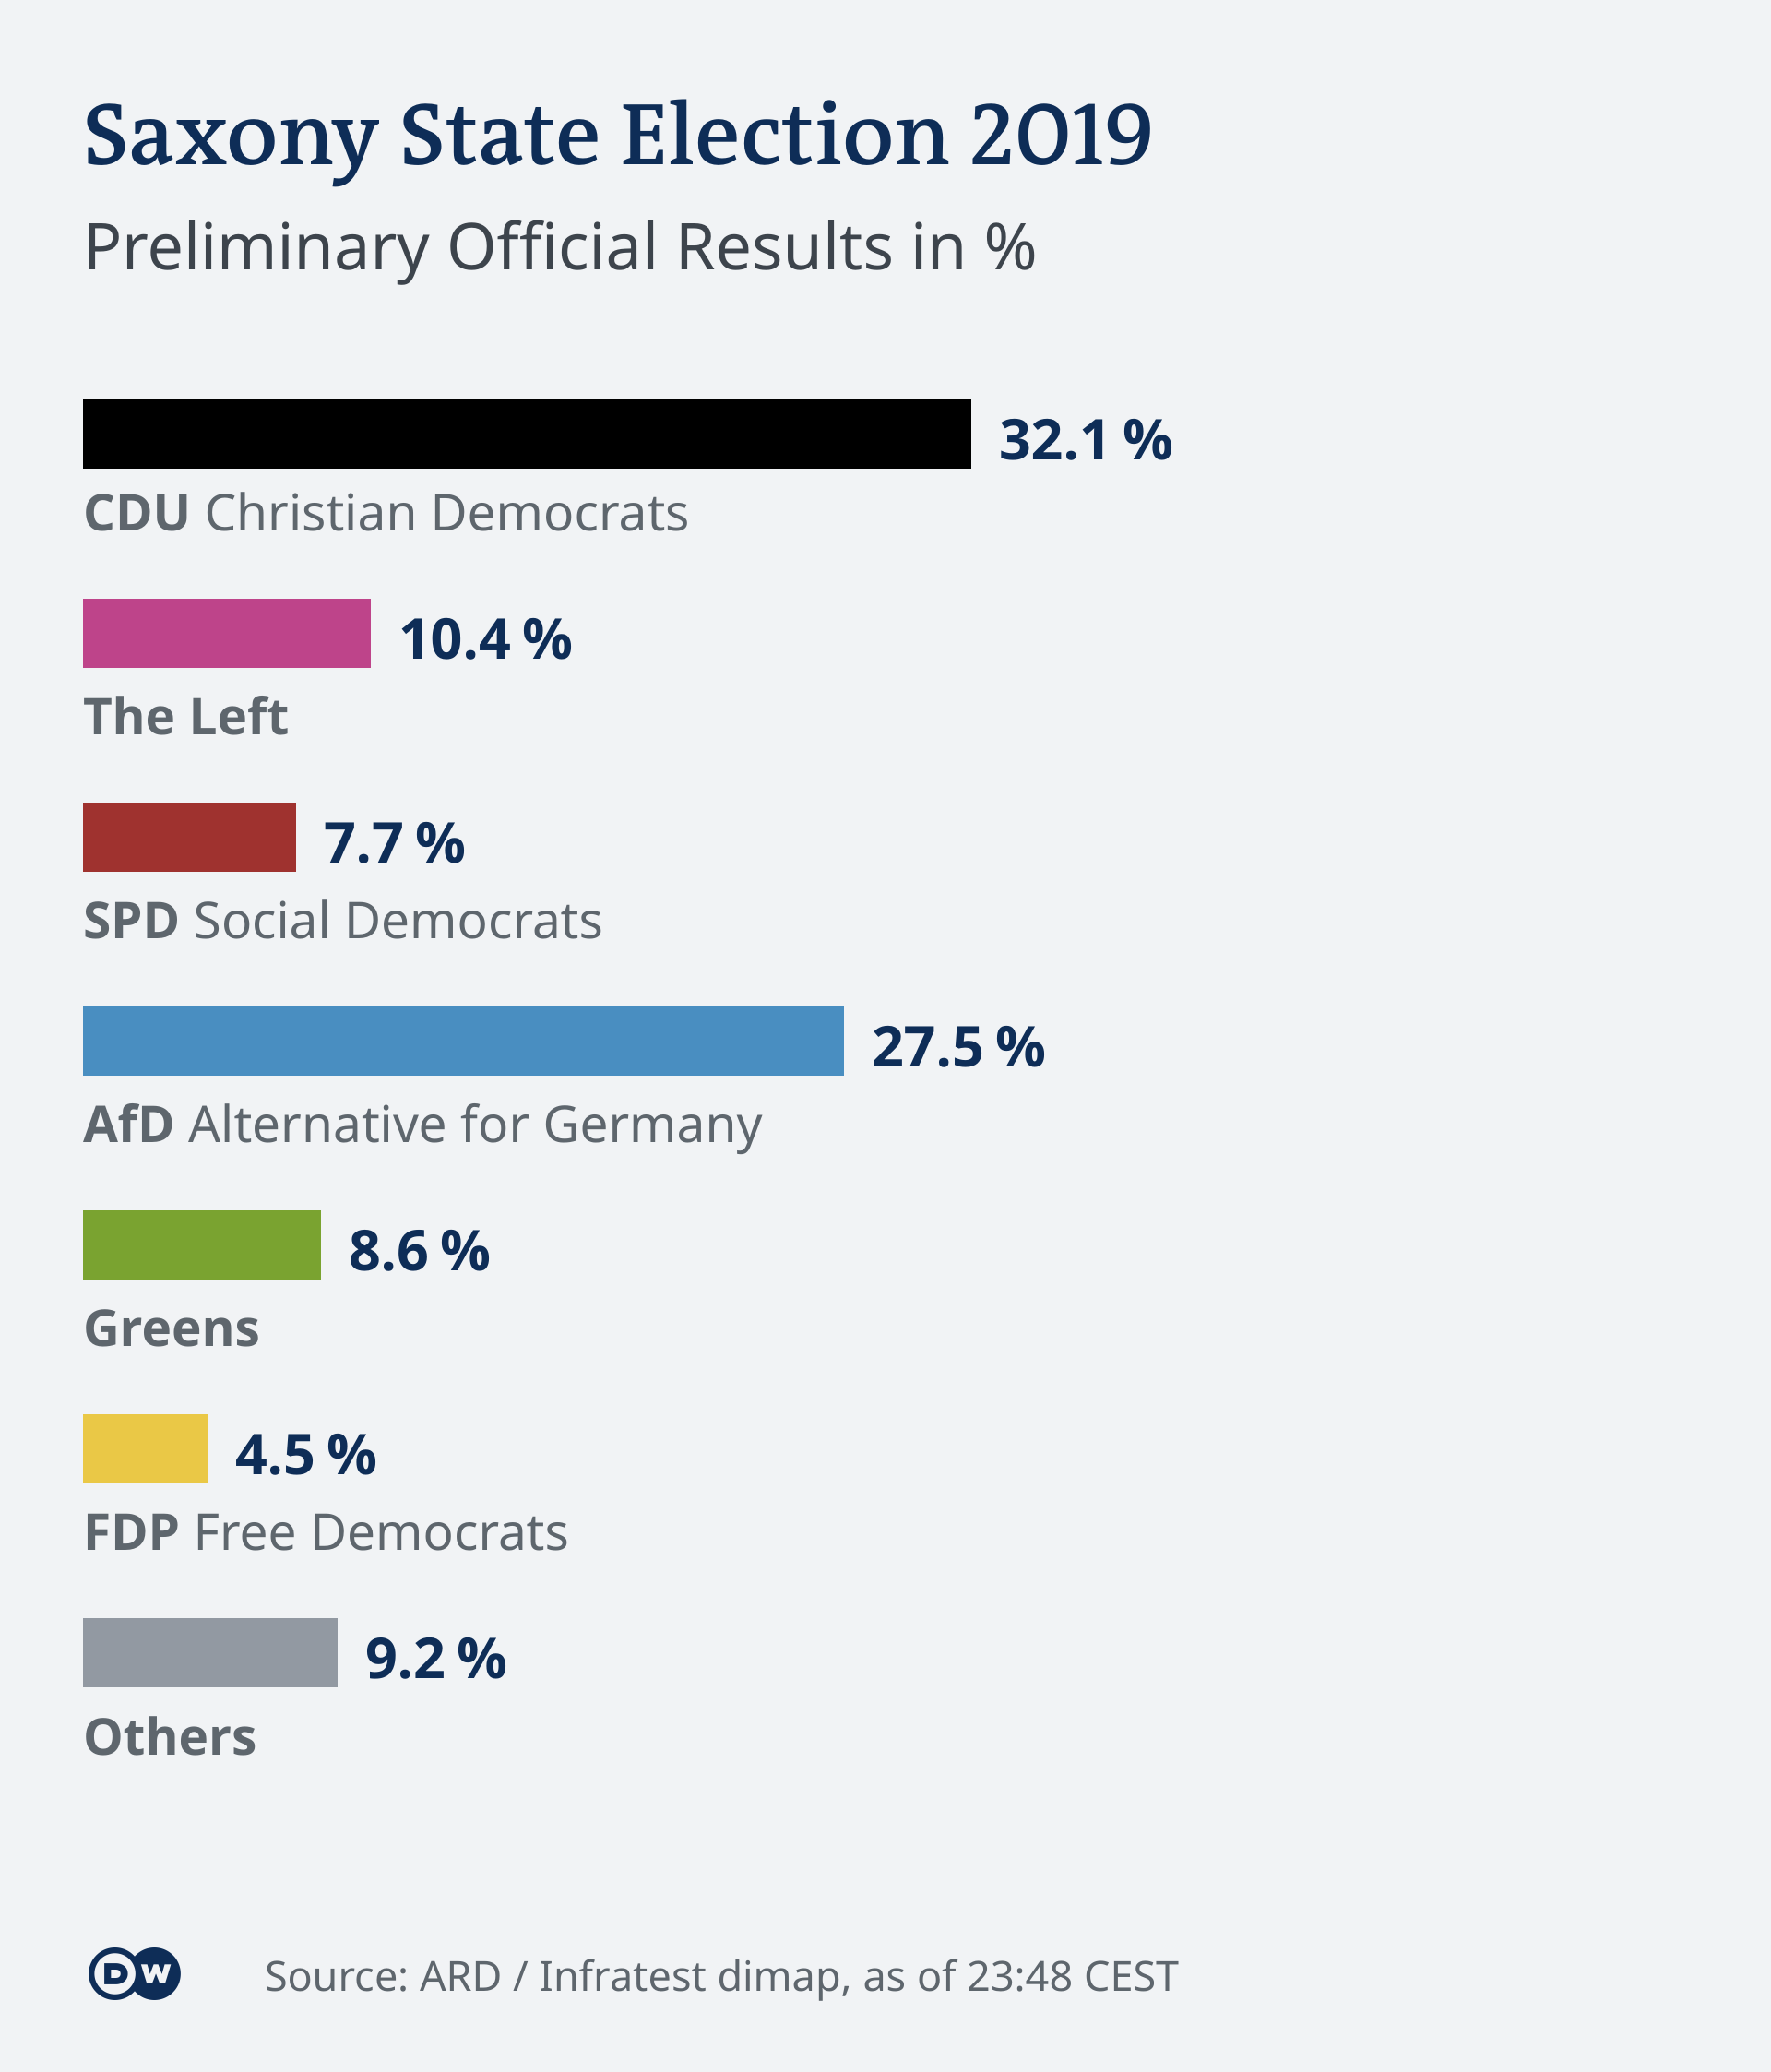 Saxony state election results 2019